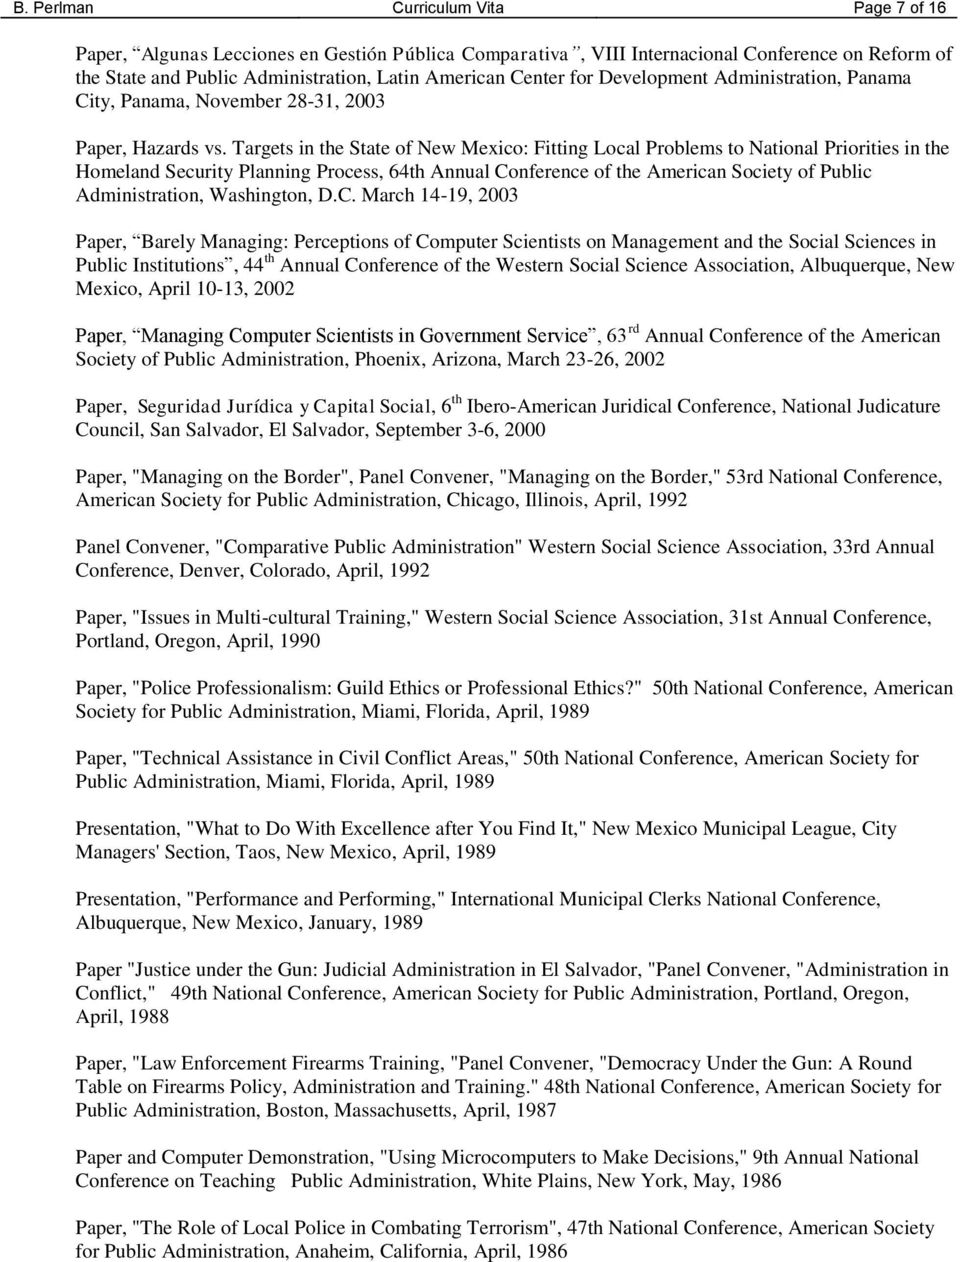 Targets in the State of New Mexico: Fitting Local Problems to National Priorities in the Homeland Security Planning Process, 64th Annual Conference of the American Society of Public Administration,